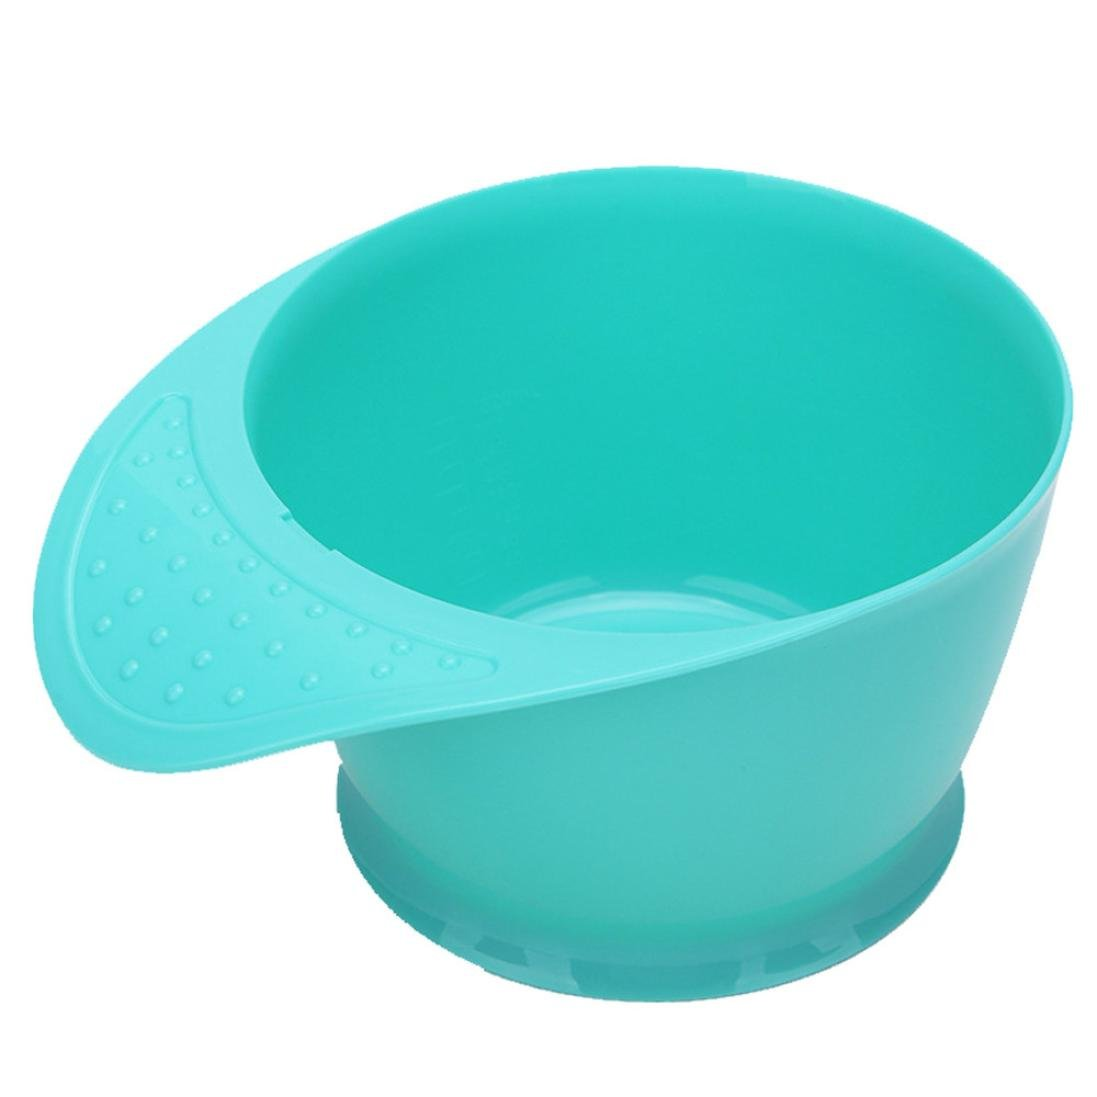 Yeefant Beauty Easy Clean Hairdressing Colouring Bleaching Dye Mixing Bowl Tool Tint Salon for Holding Hair Dye, Hairdressing Gel,Gray BCT545215886